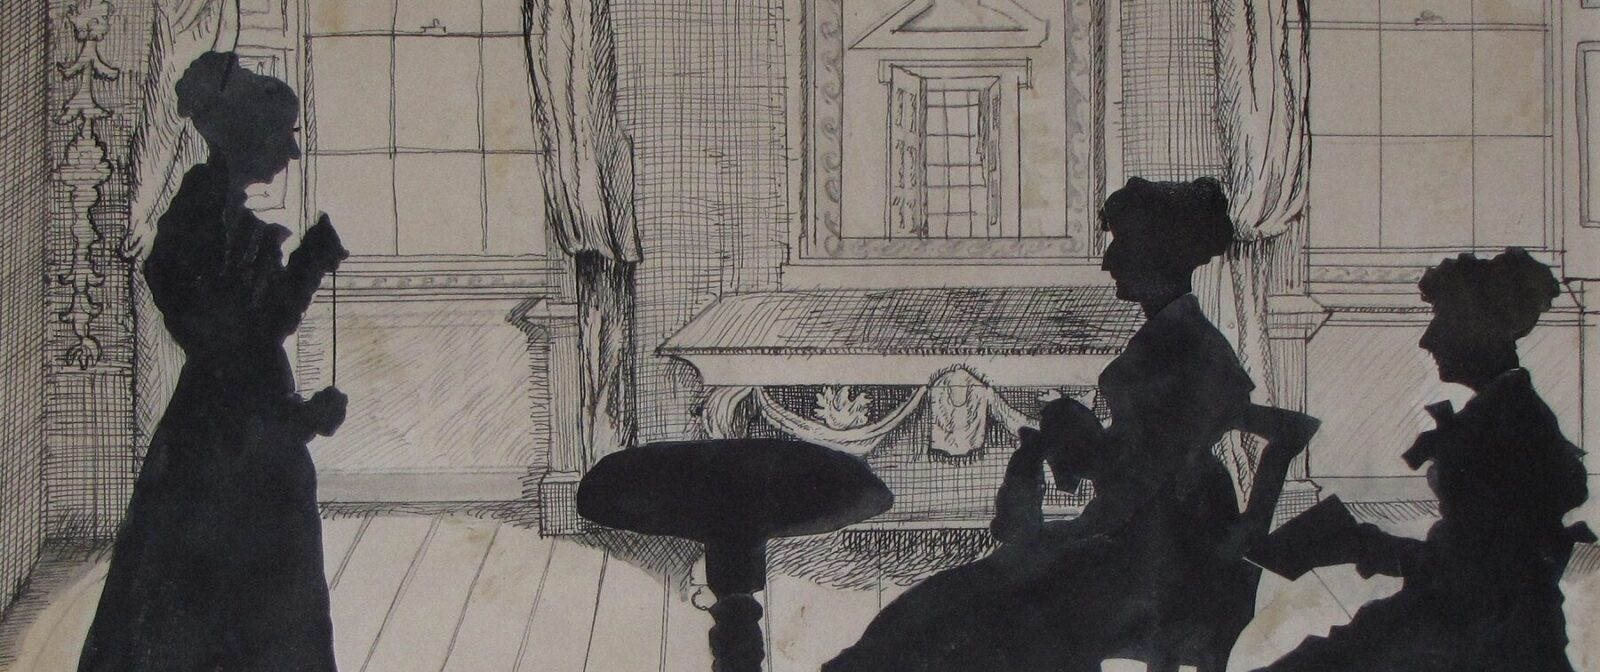 Silhouette of three Knight sisters in the Drawing Room at Godmersham Park